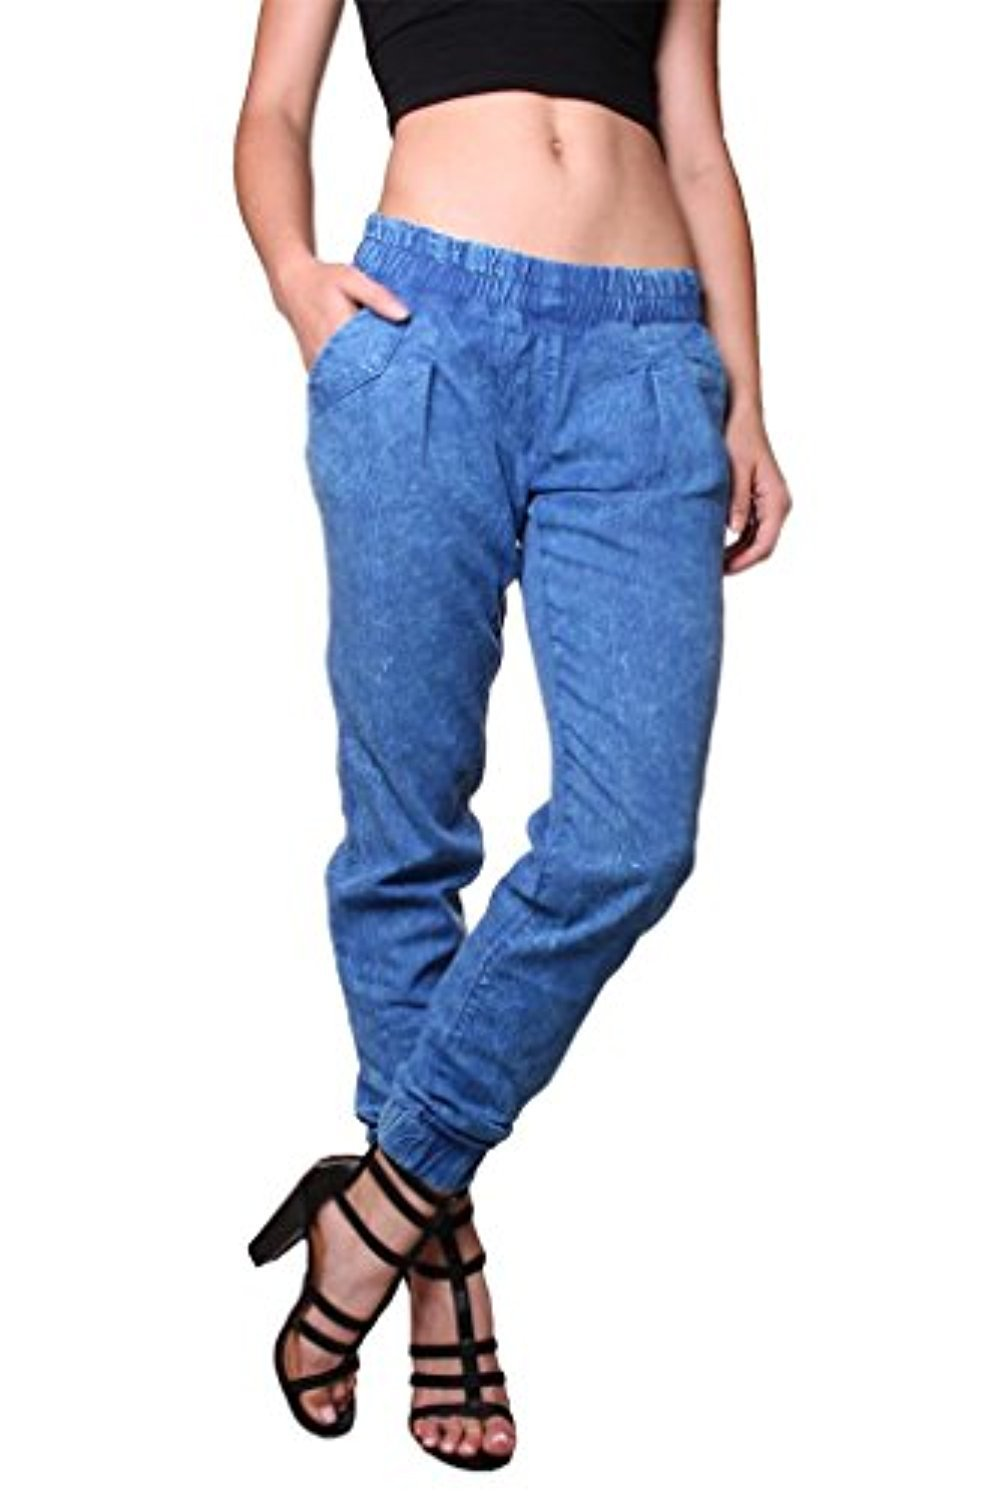 Going Fast! mens slim fit hipster stretch scrunch harem twill fashion joggers pants 1tpxl-timber for $ from Genx.